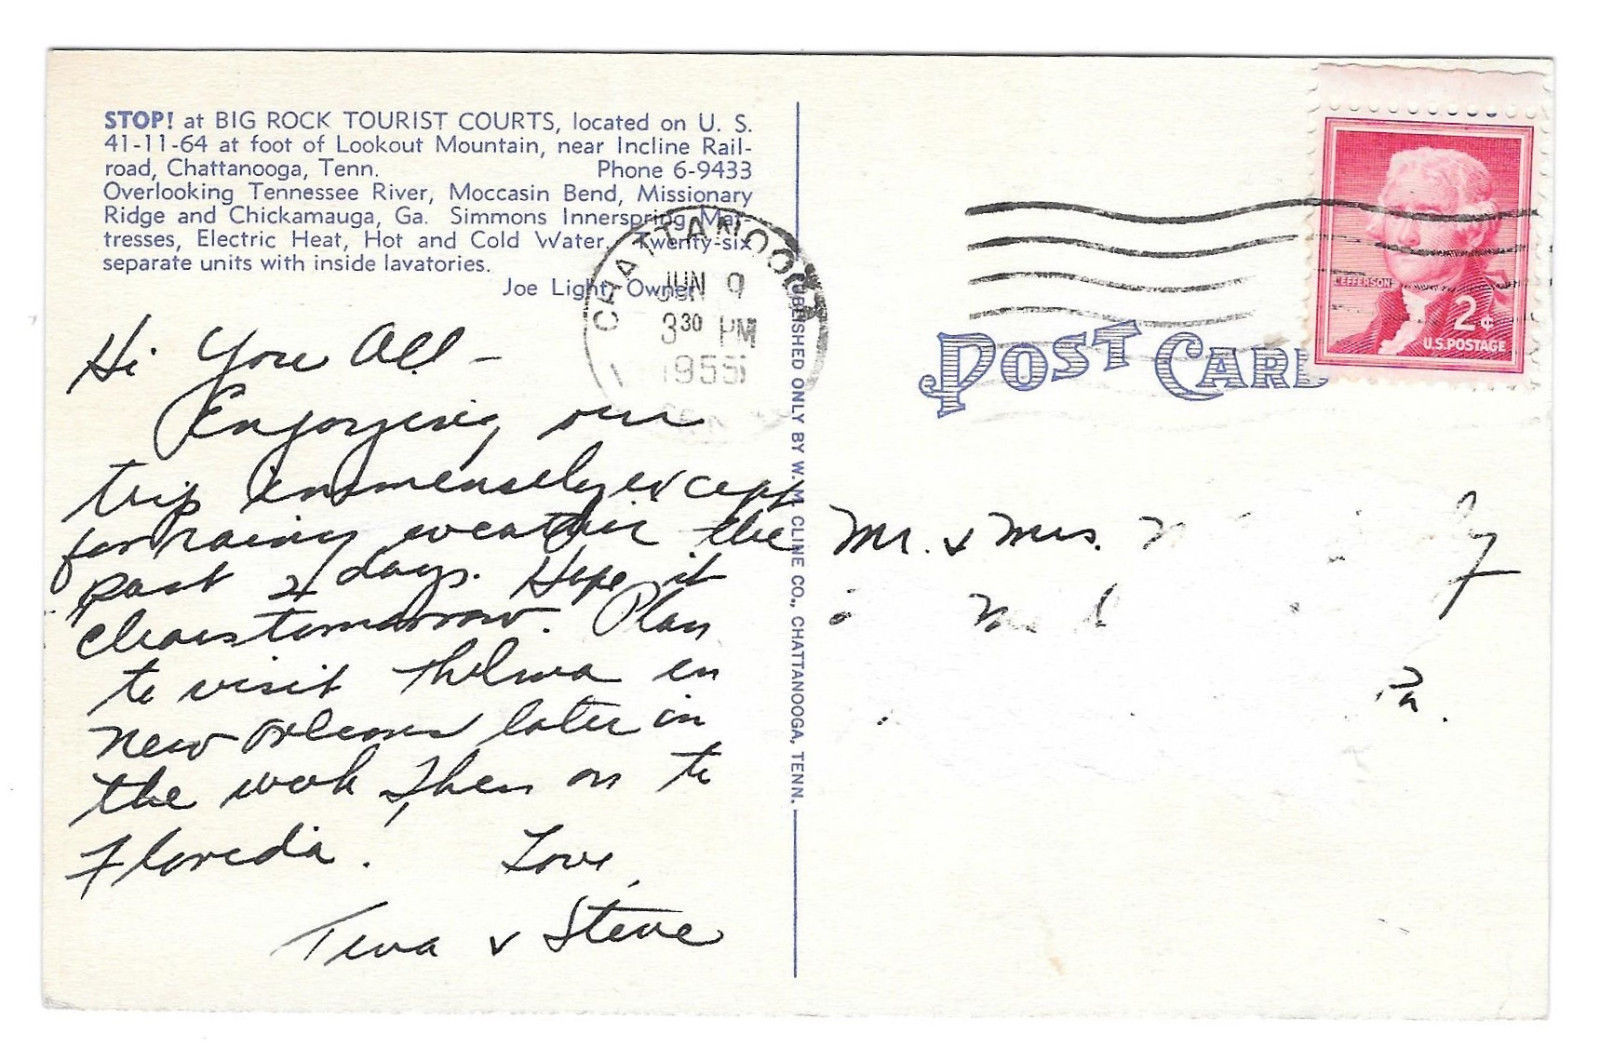 Chattanooga Tennessee Big Rock Tourists Court Motel Vintage Linen 1955 Postcard